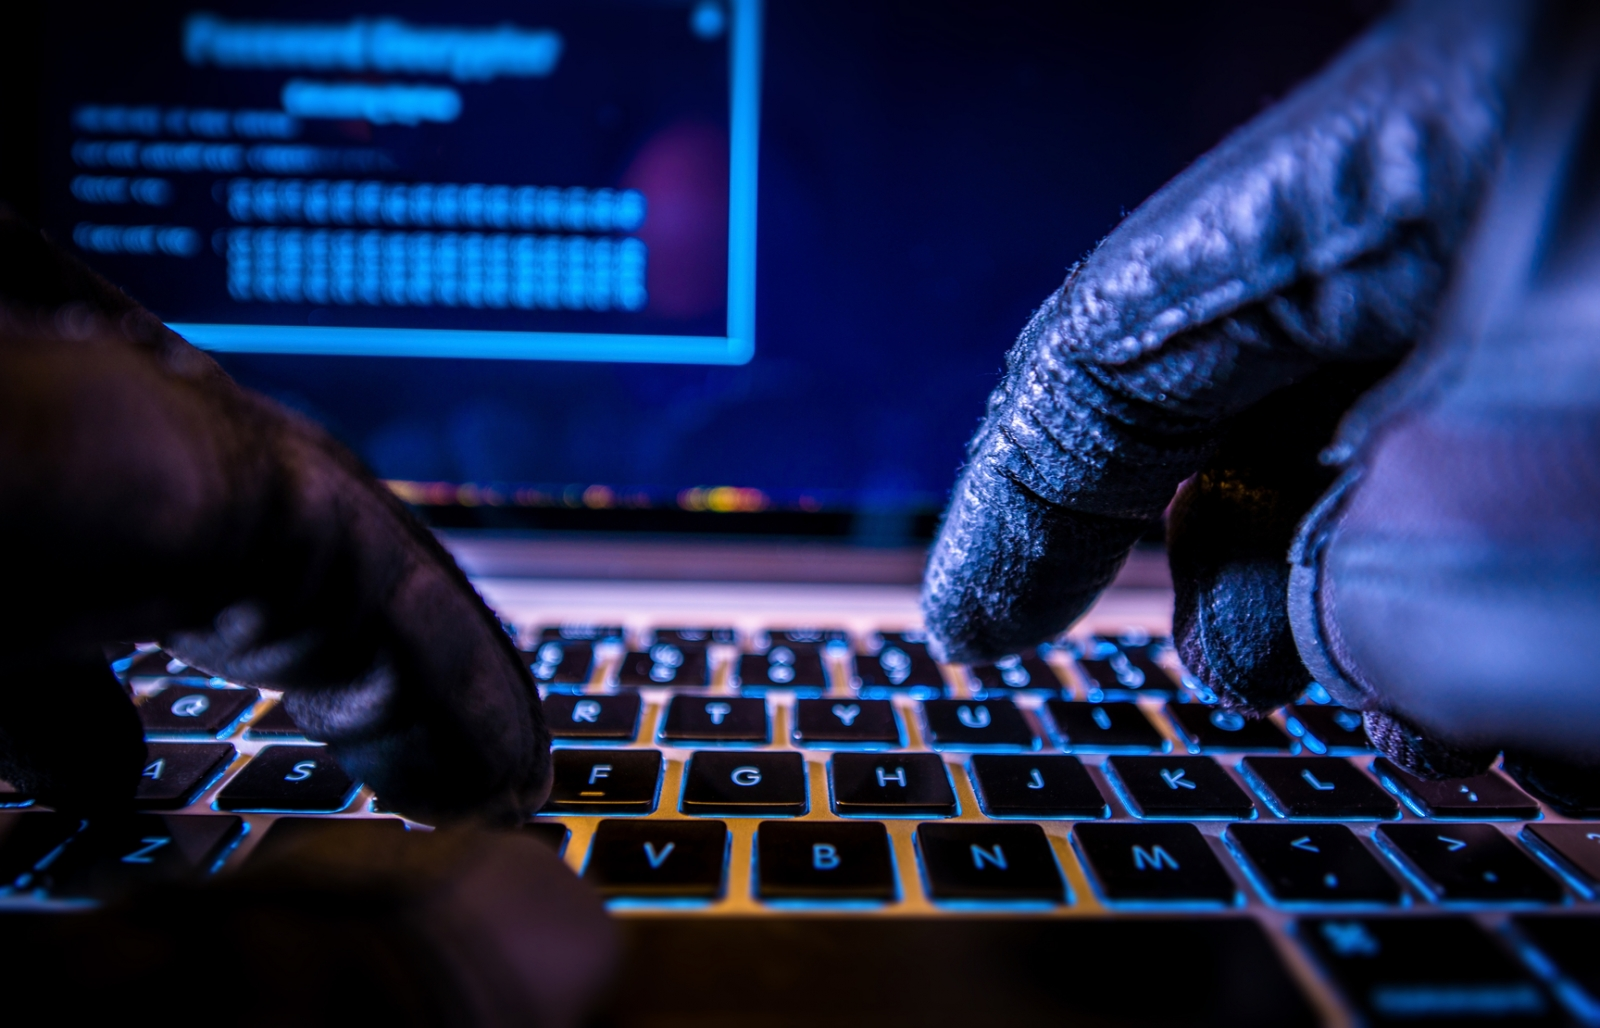 Cyberattack on largest NHS trust caused by Trojan malware